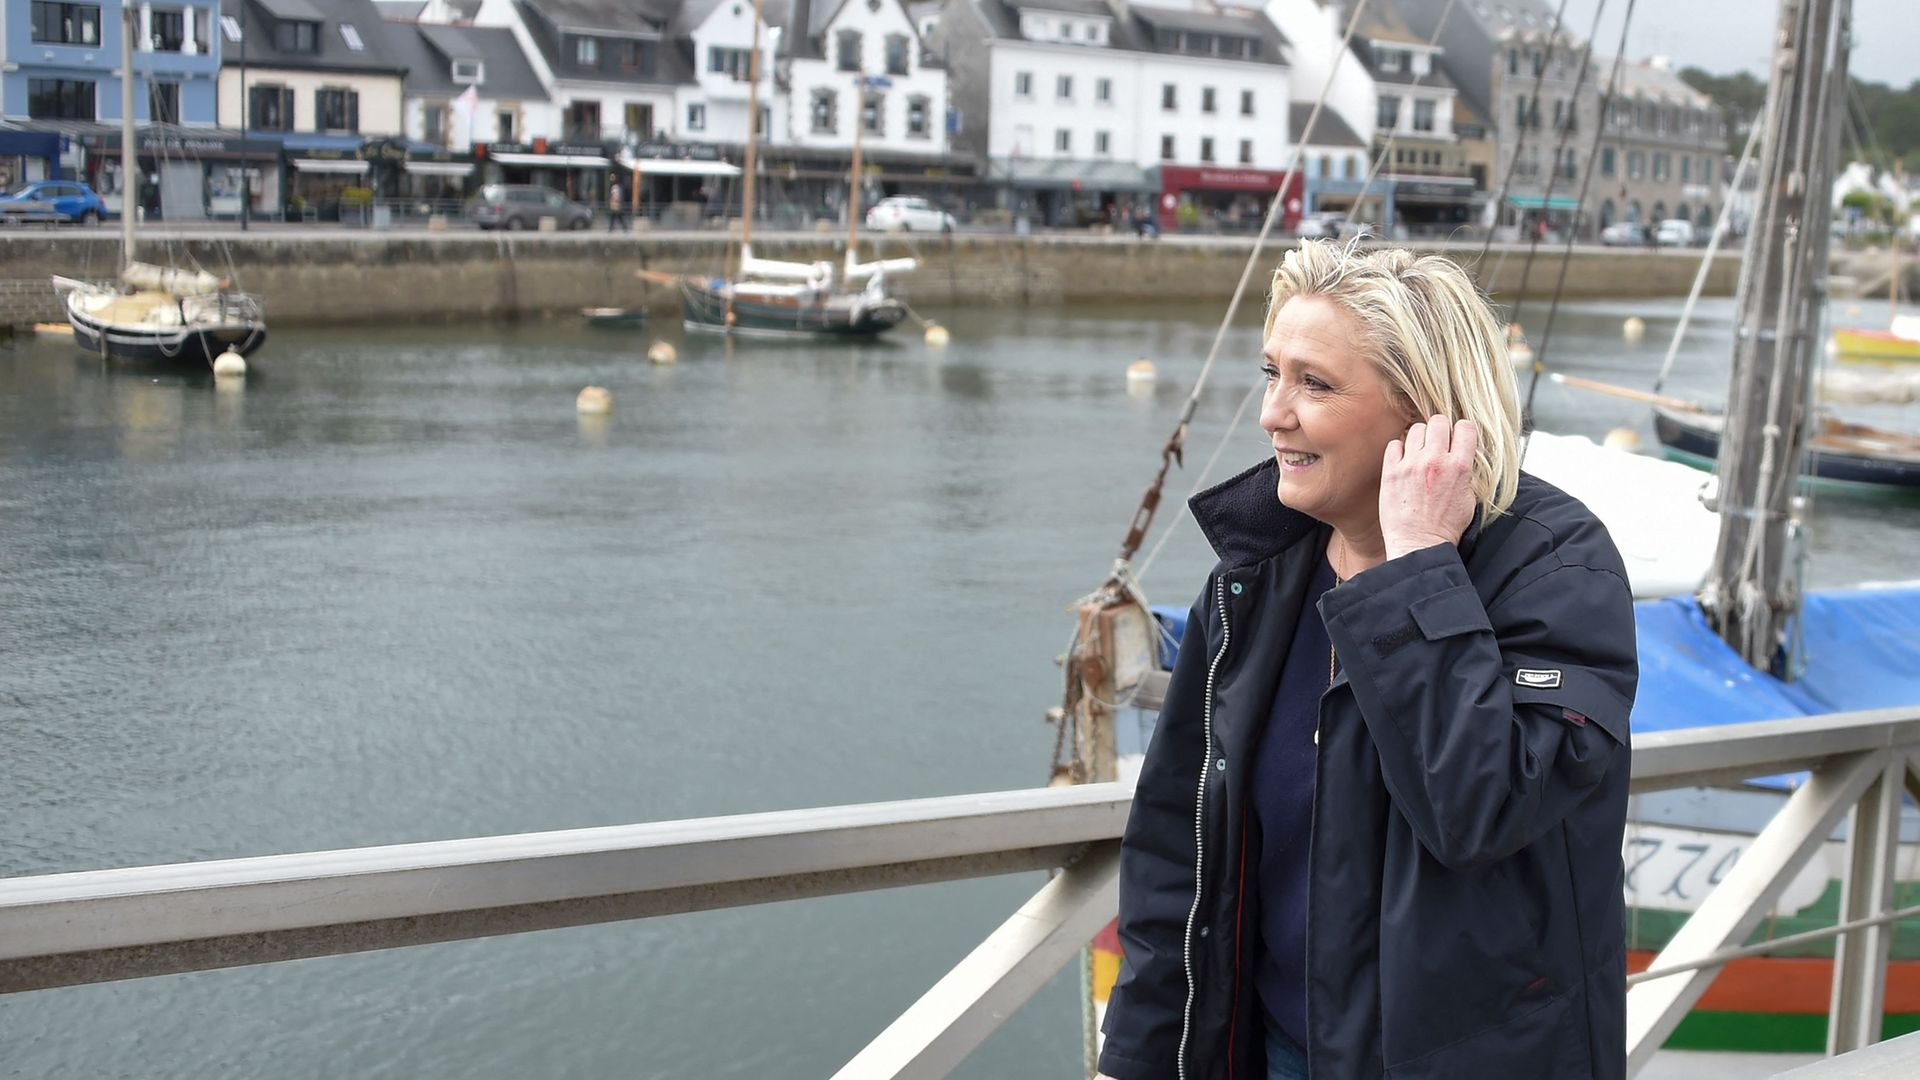 Marine Le Pen in La Trinite-sur-Mer during campaigning for Brittany's recent regional elections - Credit: AFP via Getty Images